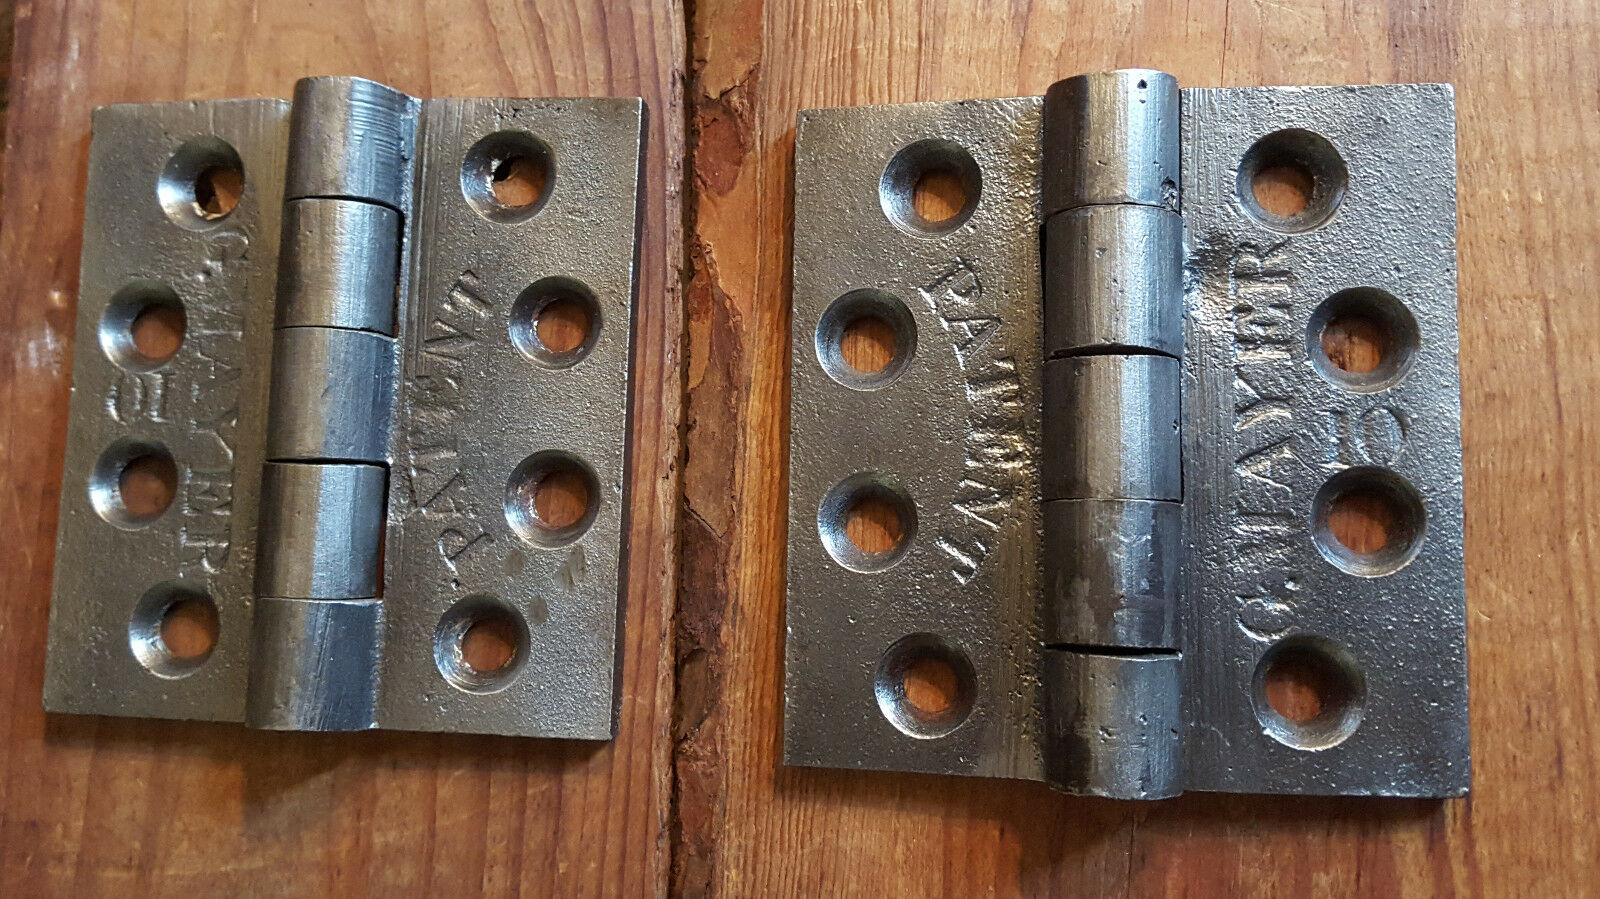 CAST IRON BUTT HINGES-Old 1800s-Vintage Hinges-Restored 3 1/2 X 3 1/4 G. MAYER